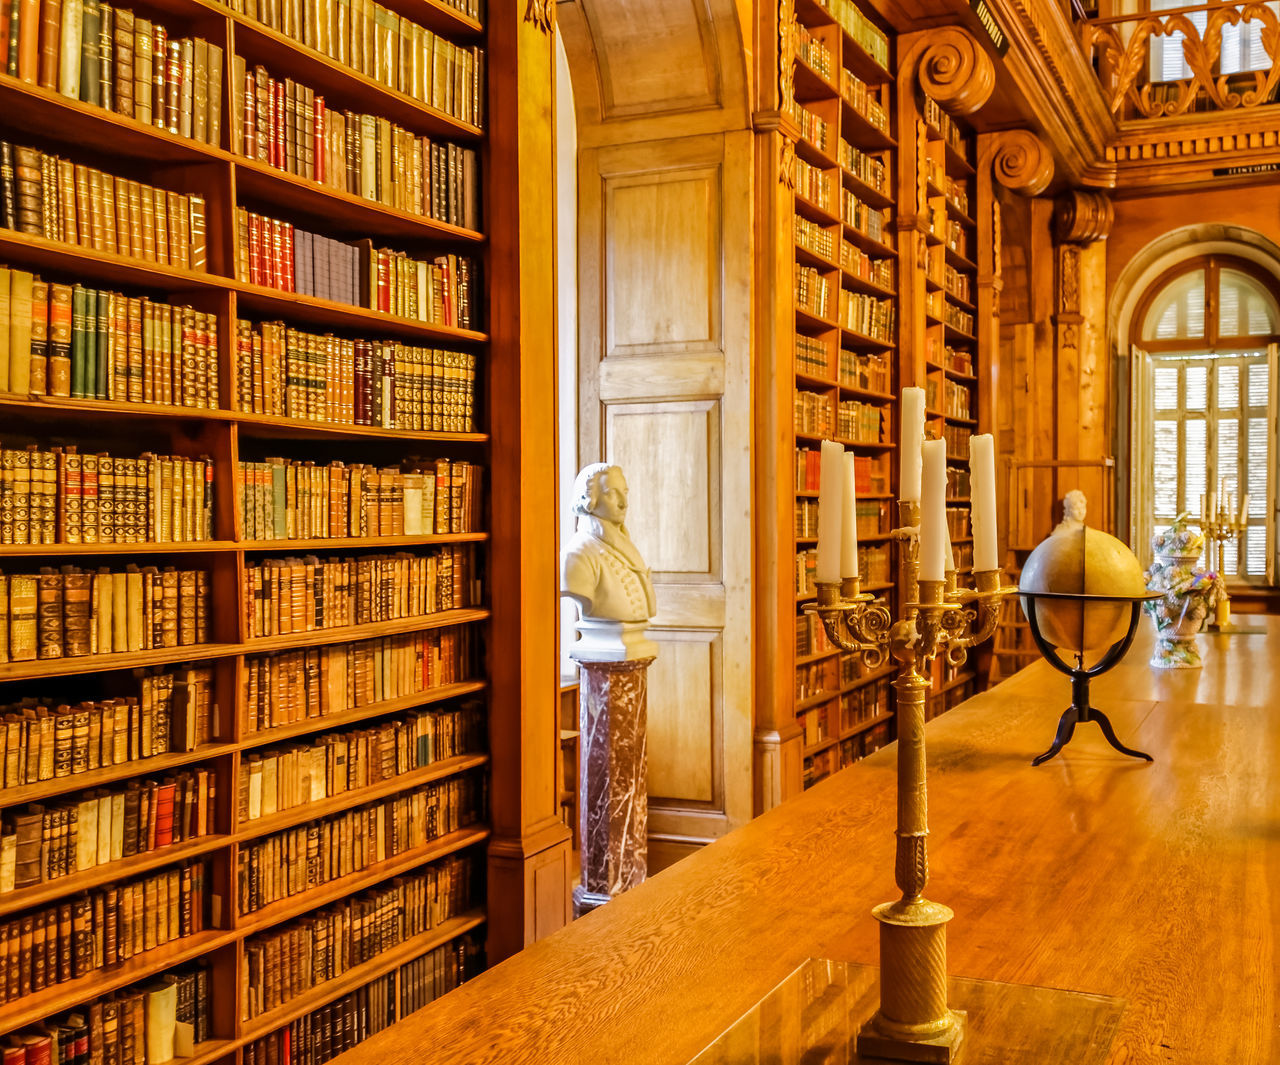 The library of an old European castle Art Books Building Built Structure Candles Day Globe History Illuminated Library No People Ornate Ornate Ceiling Shelves Tome Wood